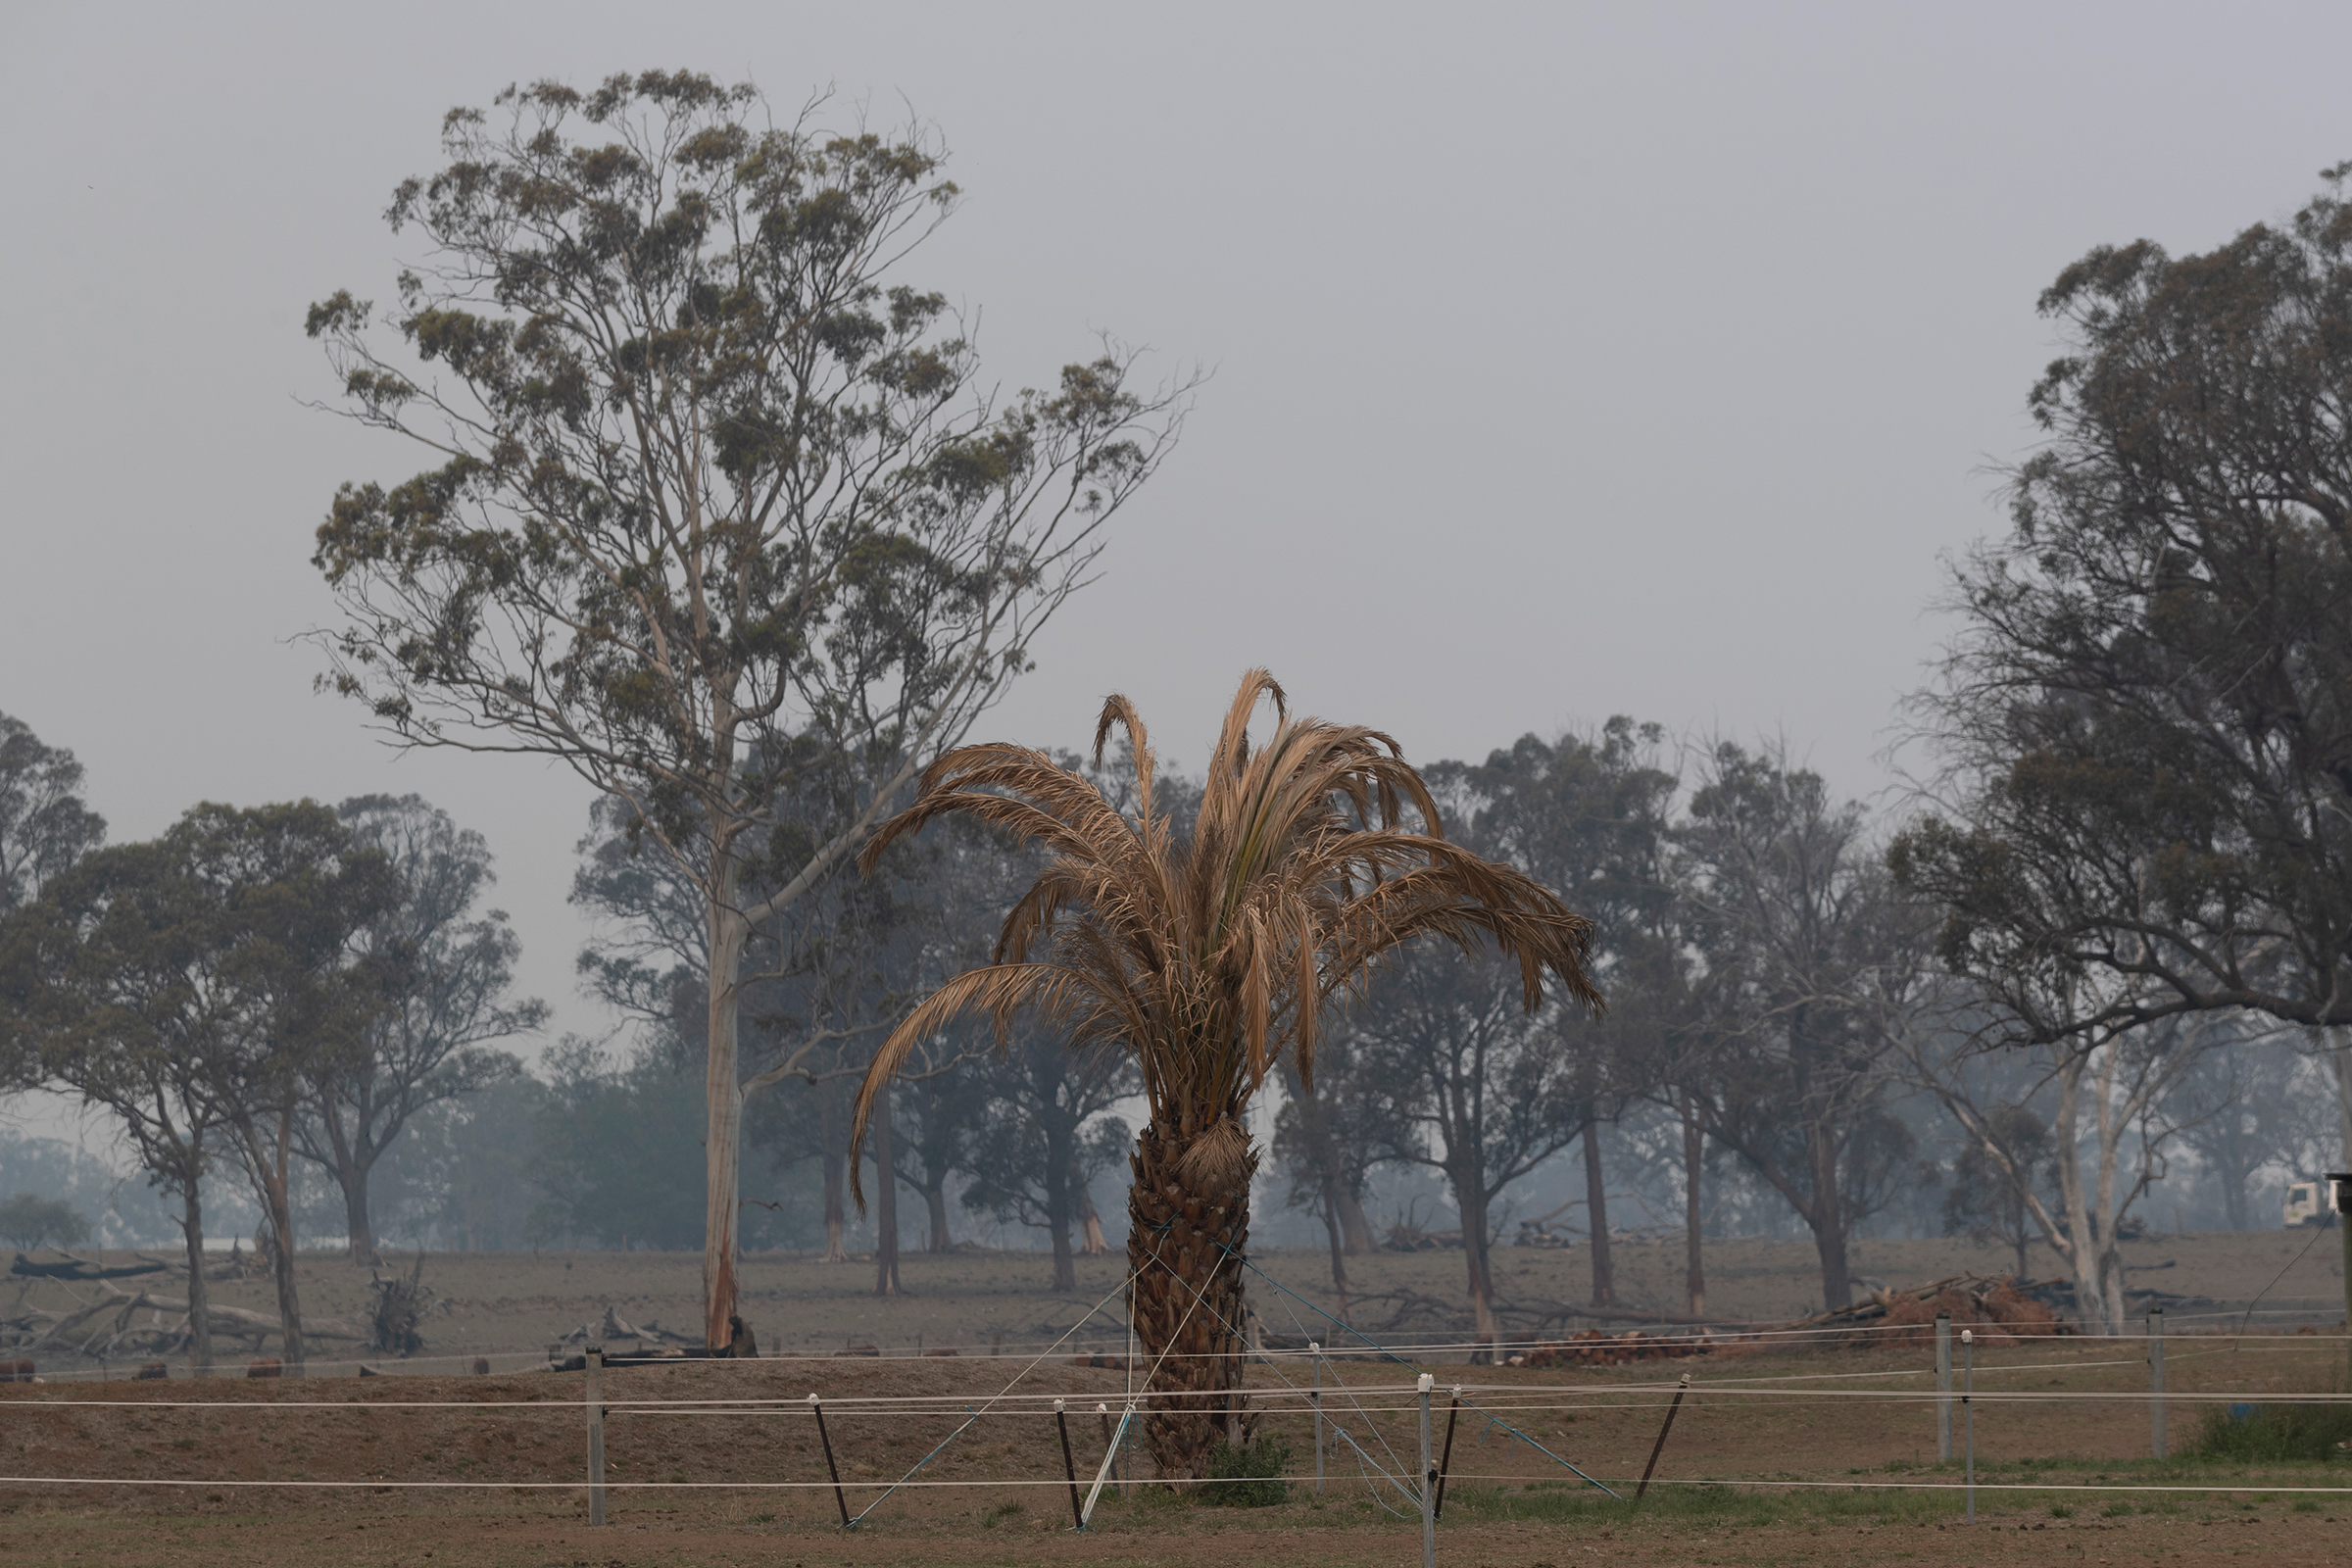 A palm tree blackened by fire in Glen Innes, New South Wales, on Nov. 11, 2019.